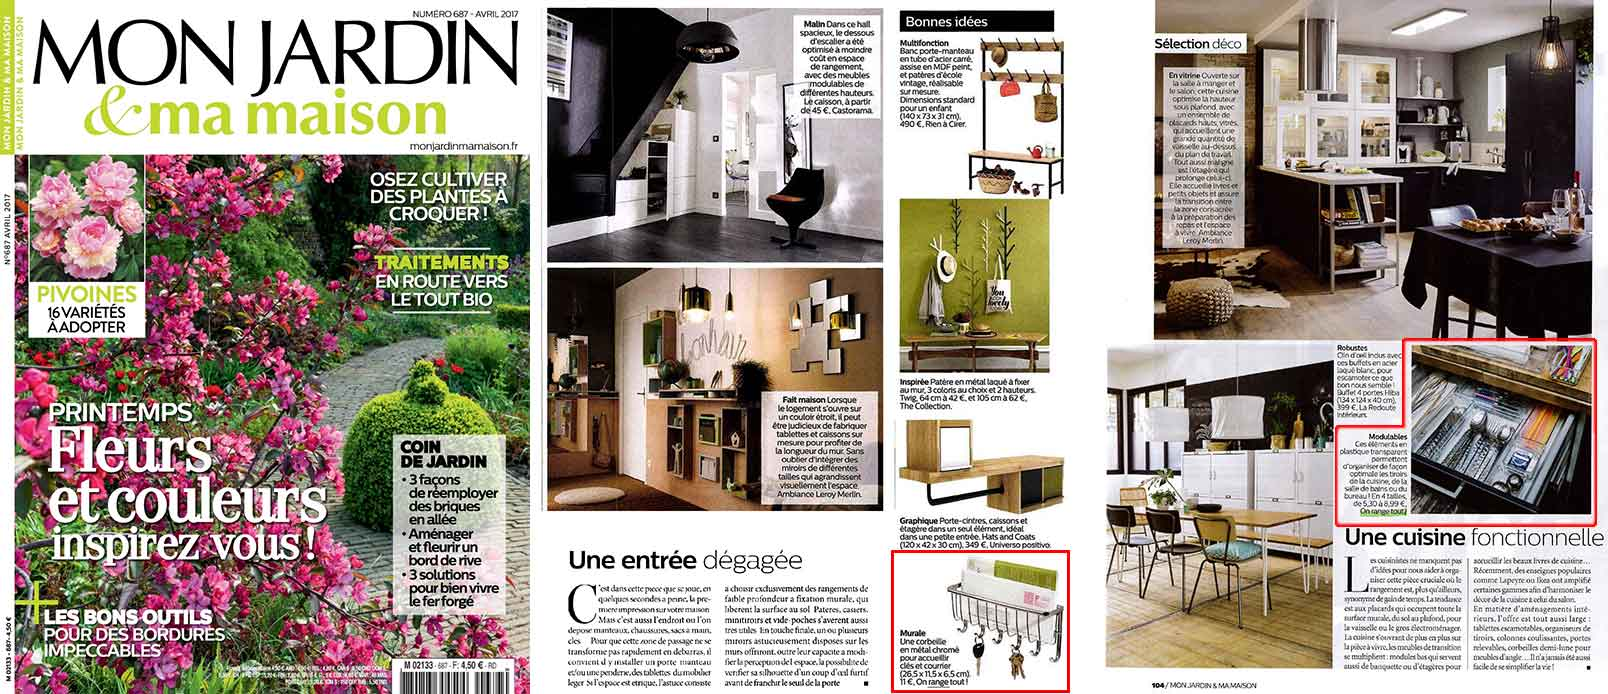 magazine mon jardin et ma maison best mon jardin u ma. Black Bedroom Furniture Sets. Home Design Ideas